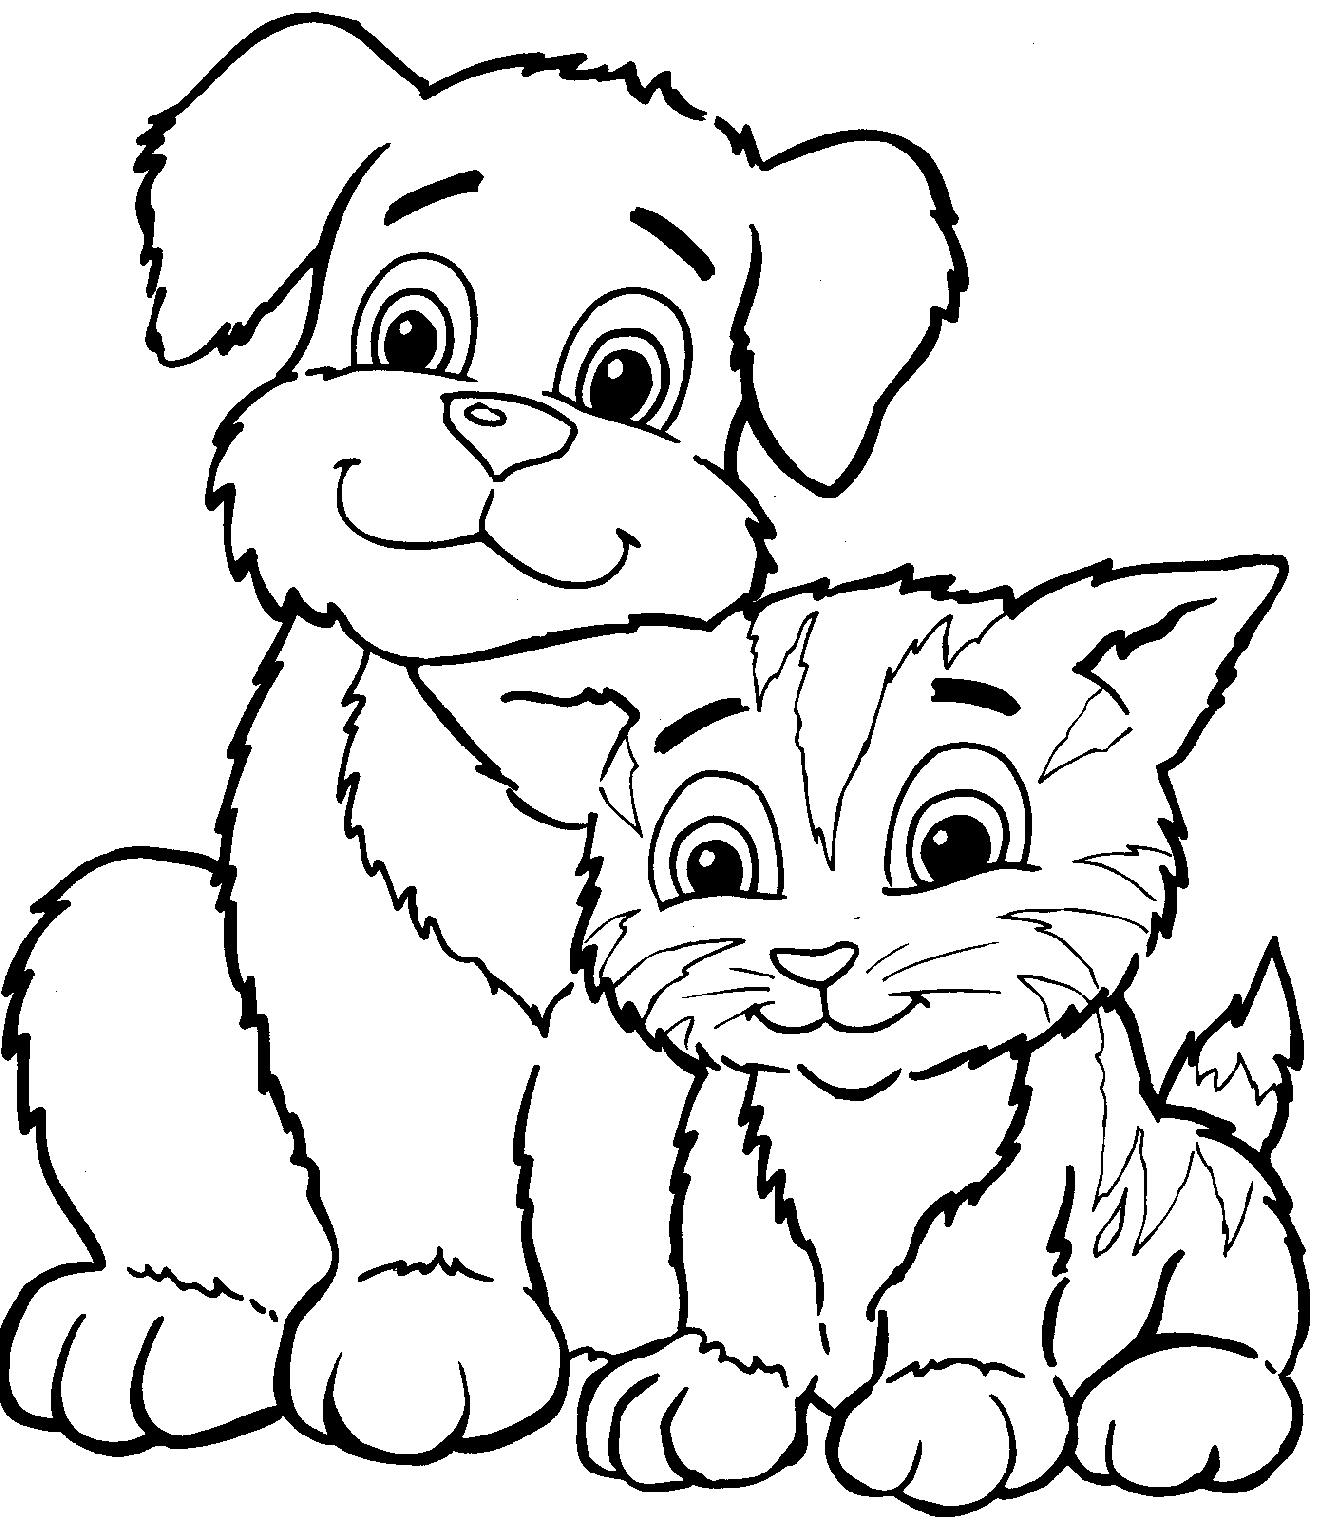 1328x1530 Cat Coloring Book Luxury Free Printable Cat Coloring Pages